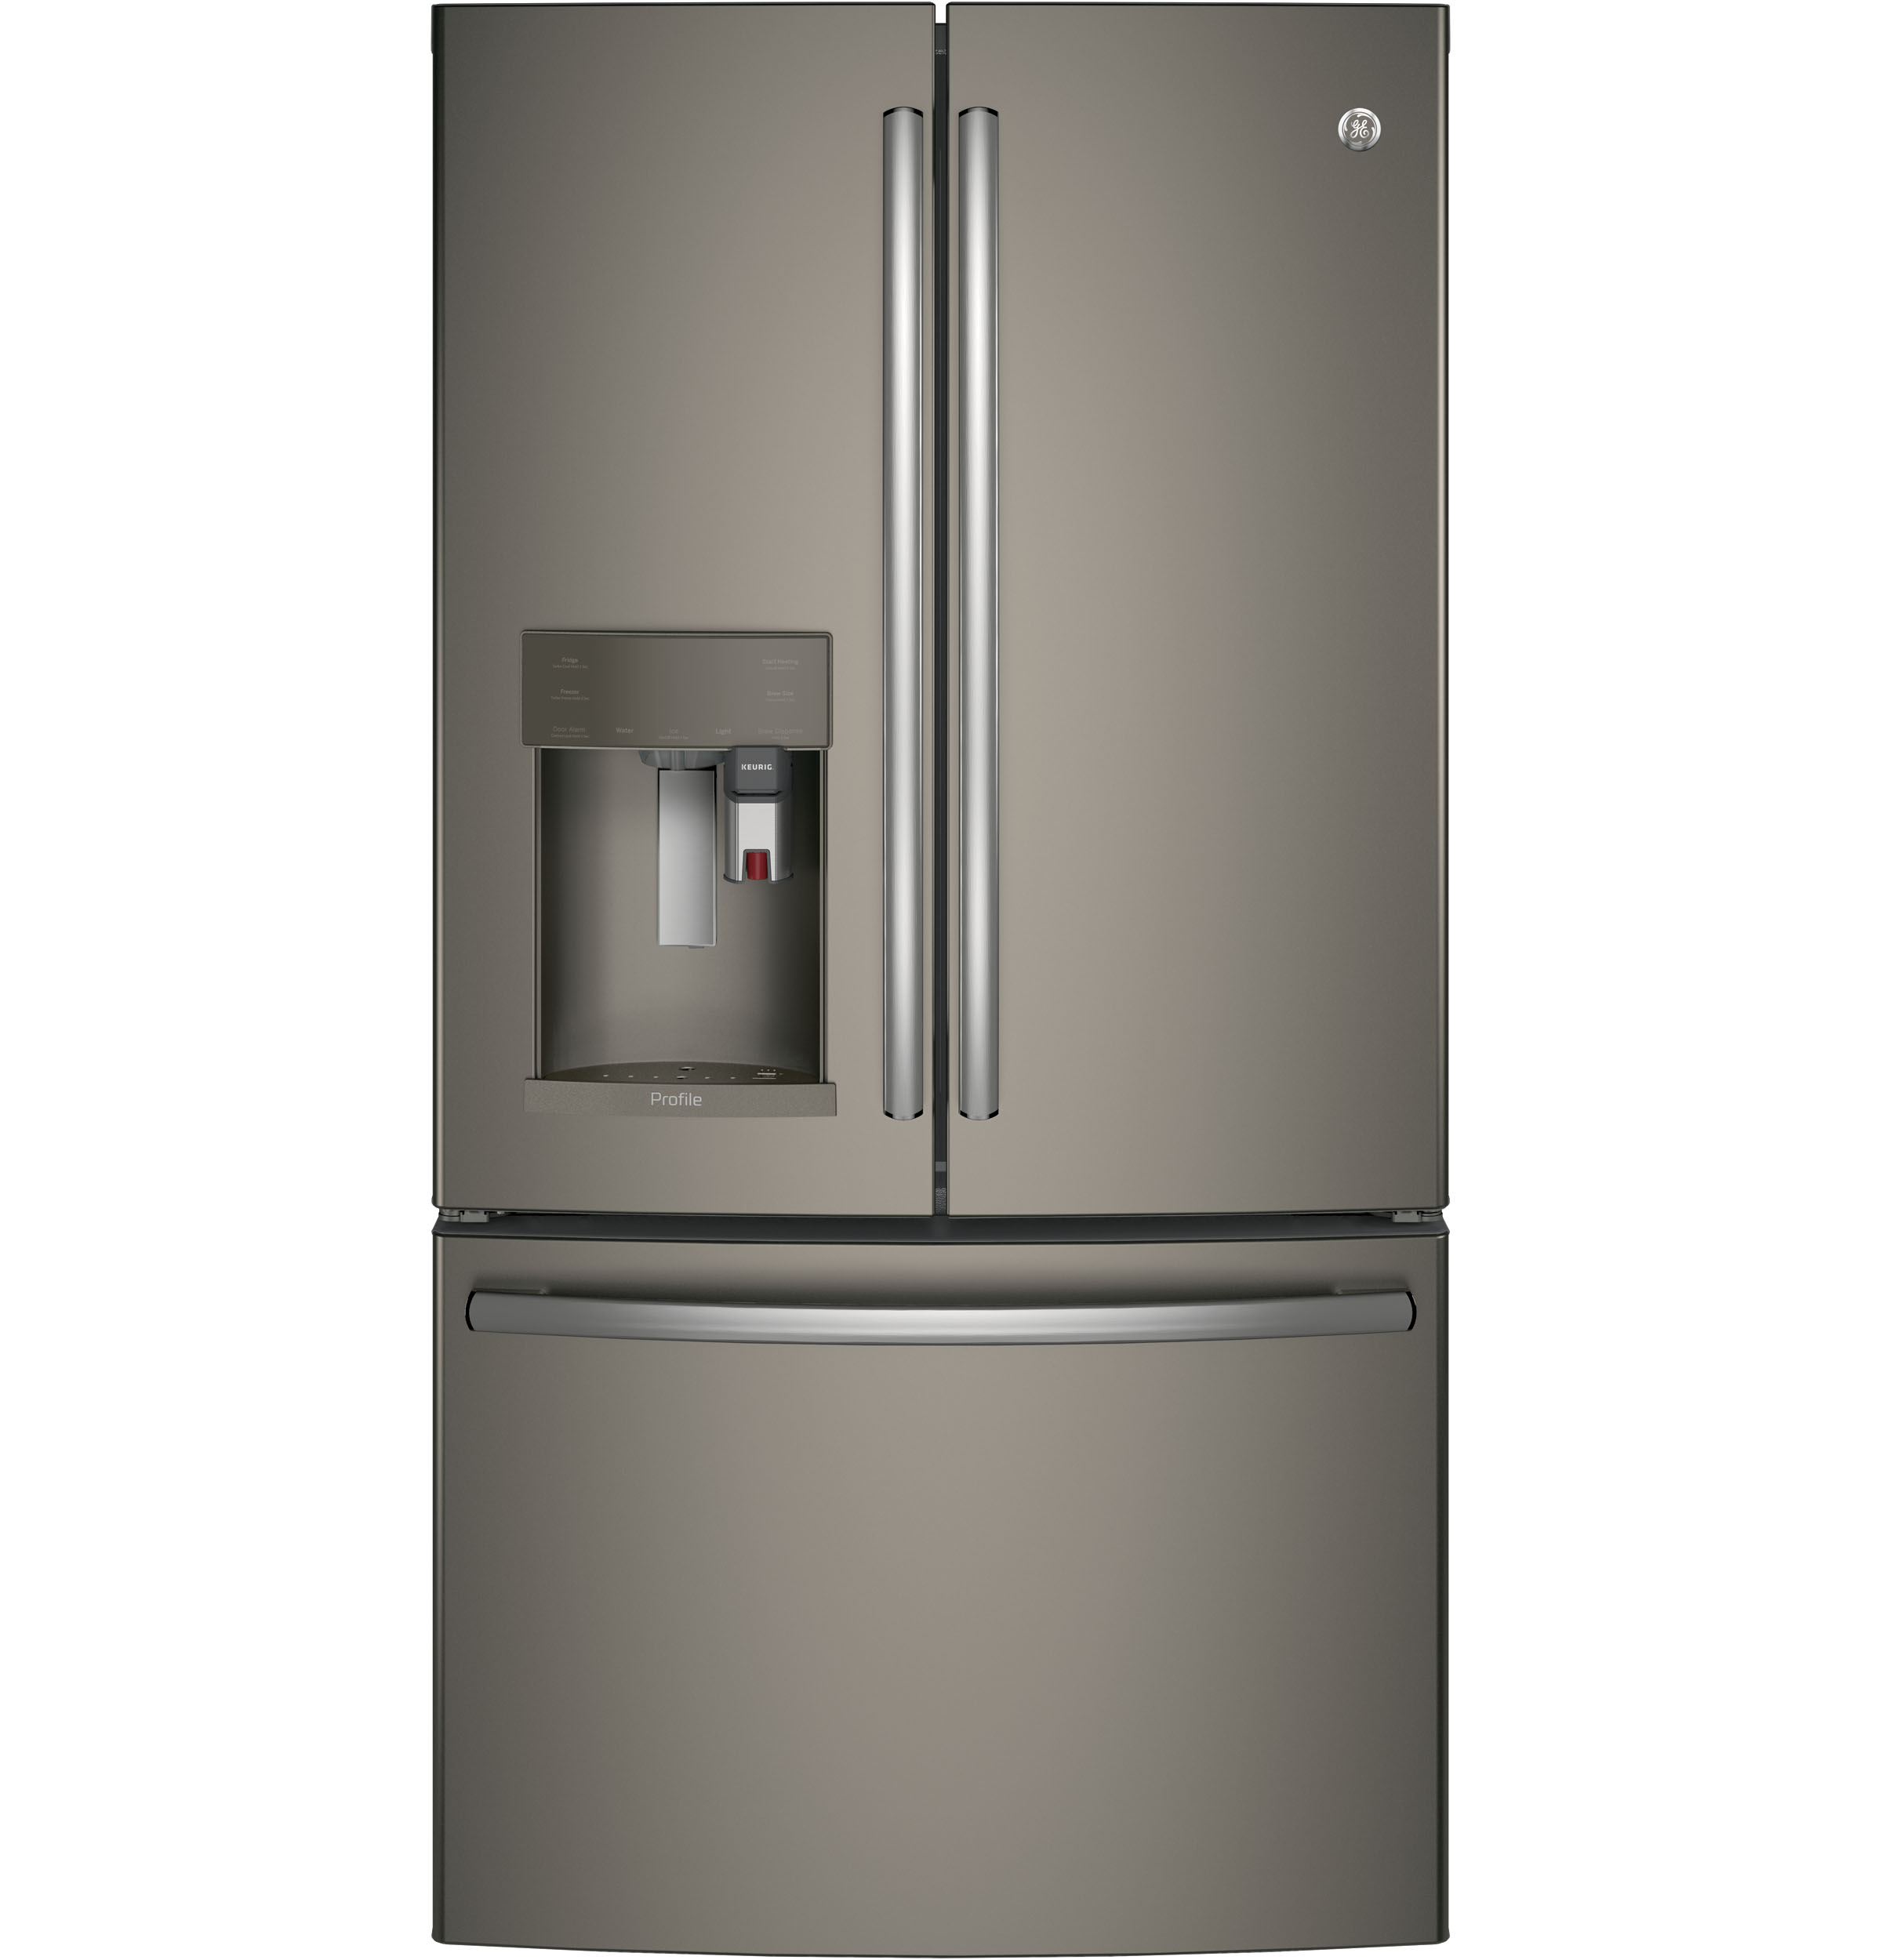 GE Profile GE Profile™ Series ENERGY STAR® 27.8 Cu. Ft. French-Door Refrigerator with Keurig® K-Cup® Brewing System